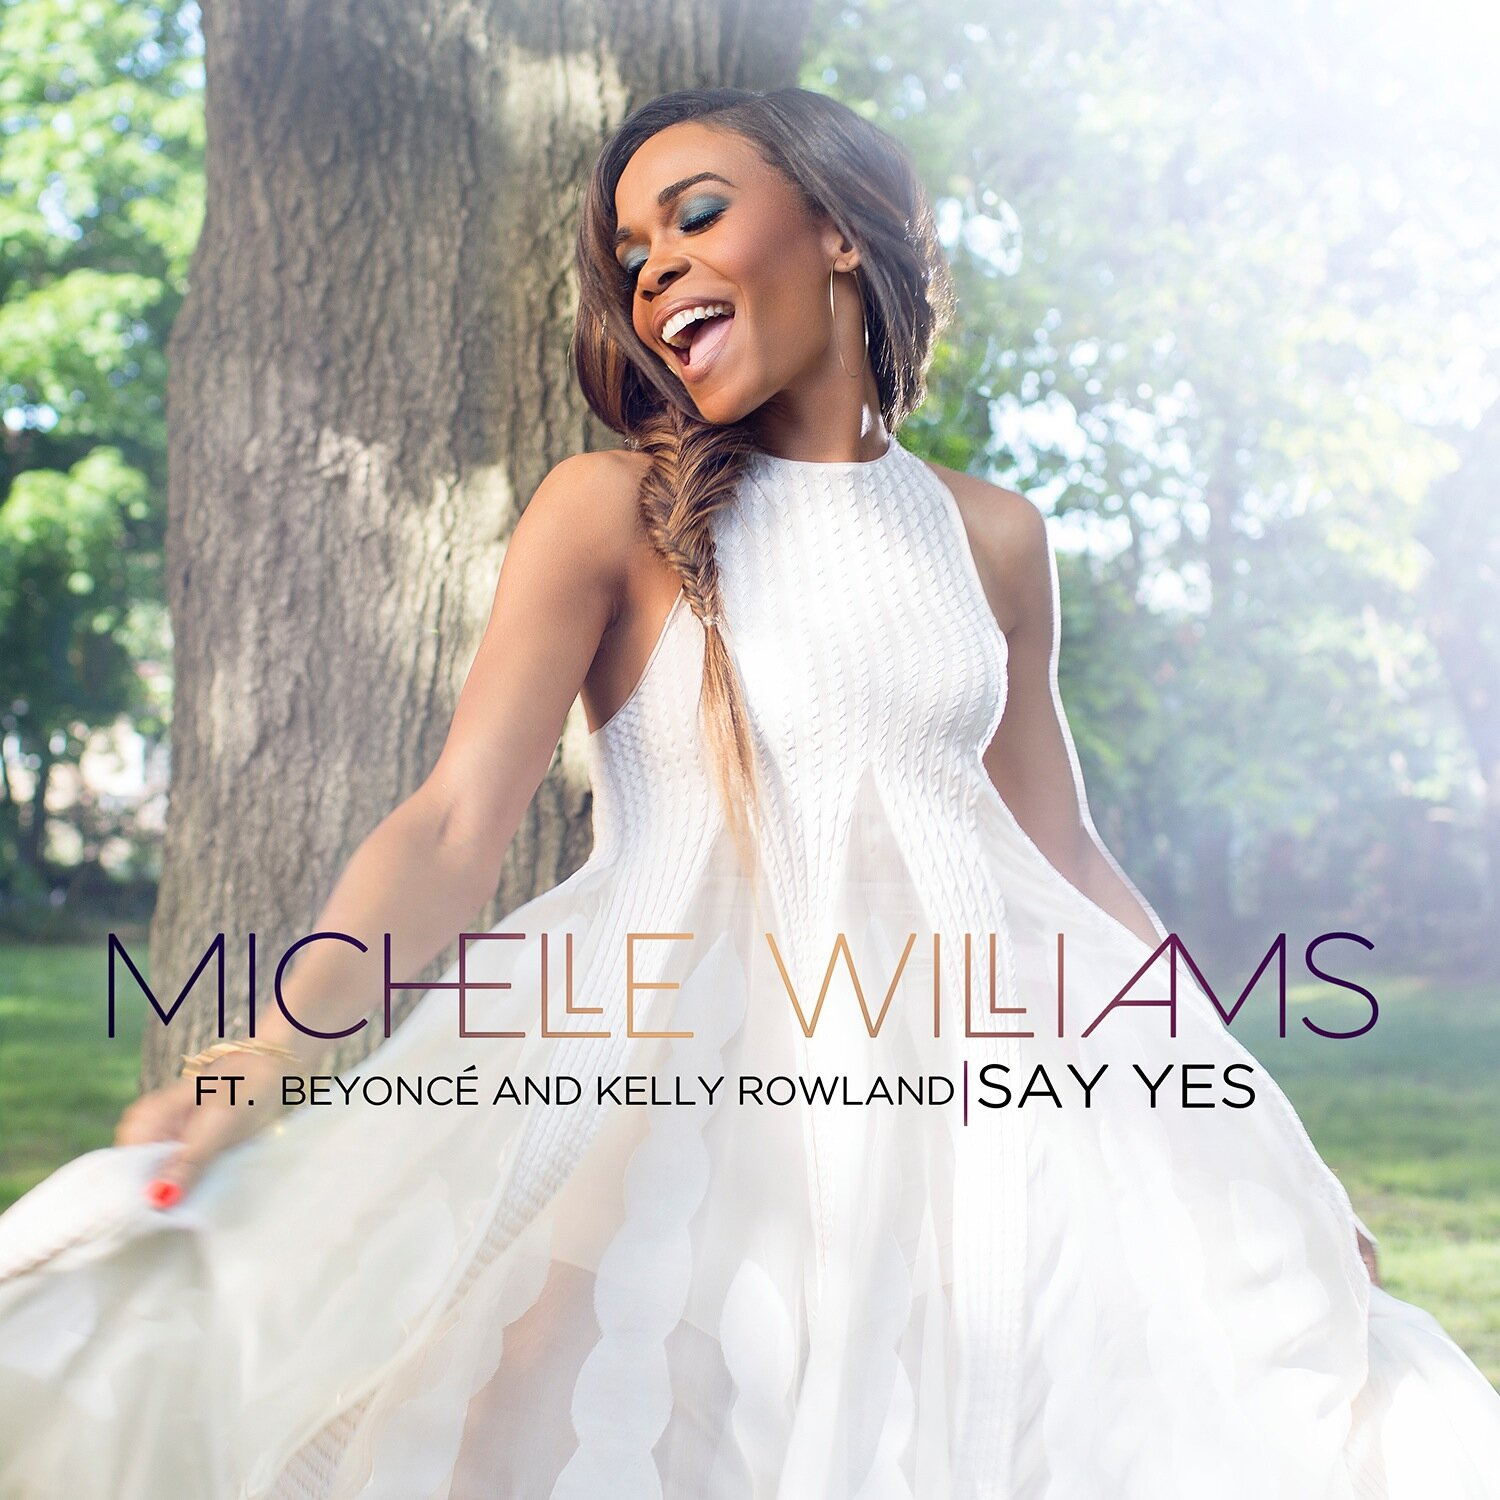 Michelle-Williams-say-yes-beyonce-kelly-rowland